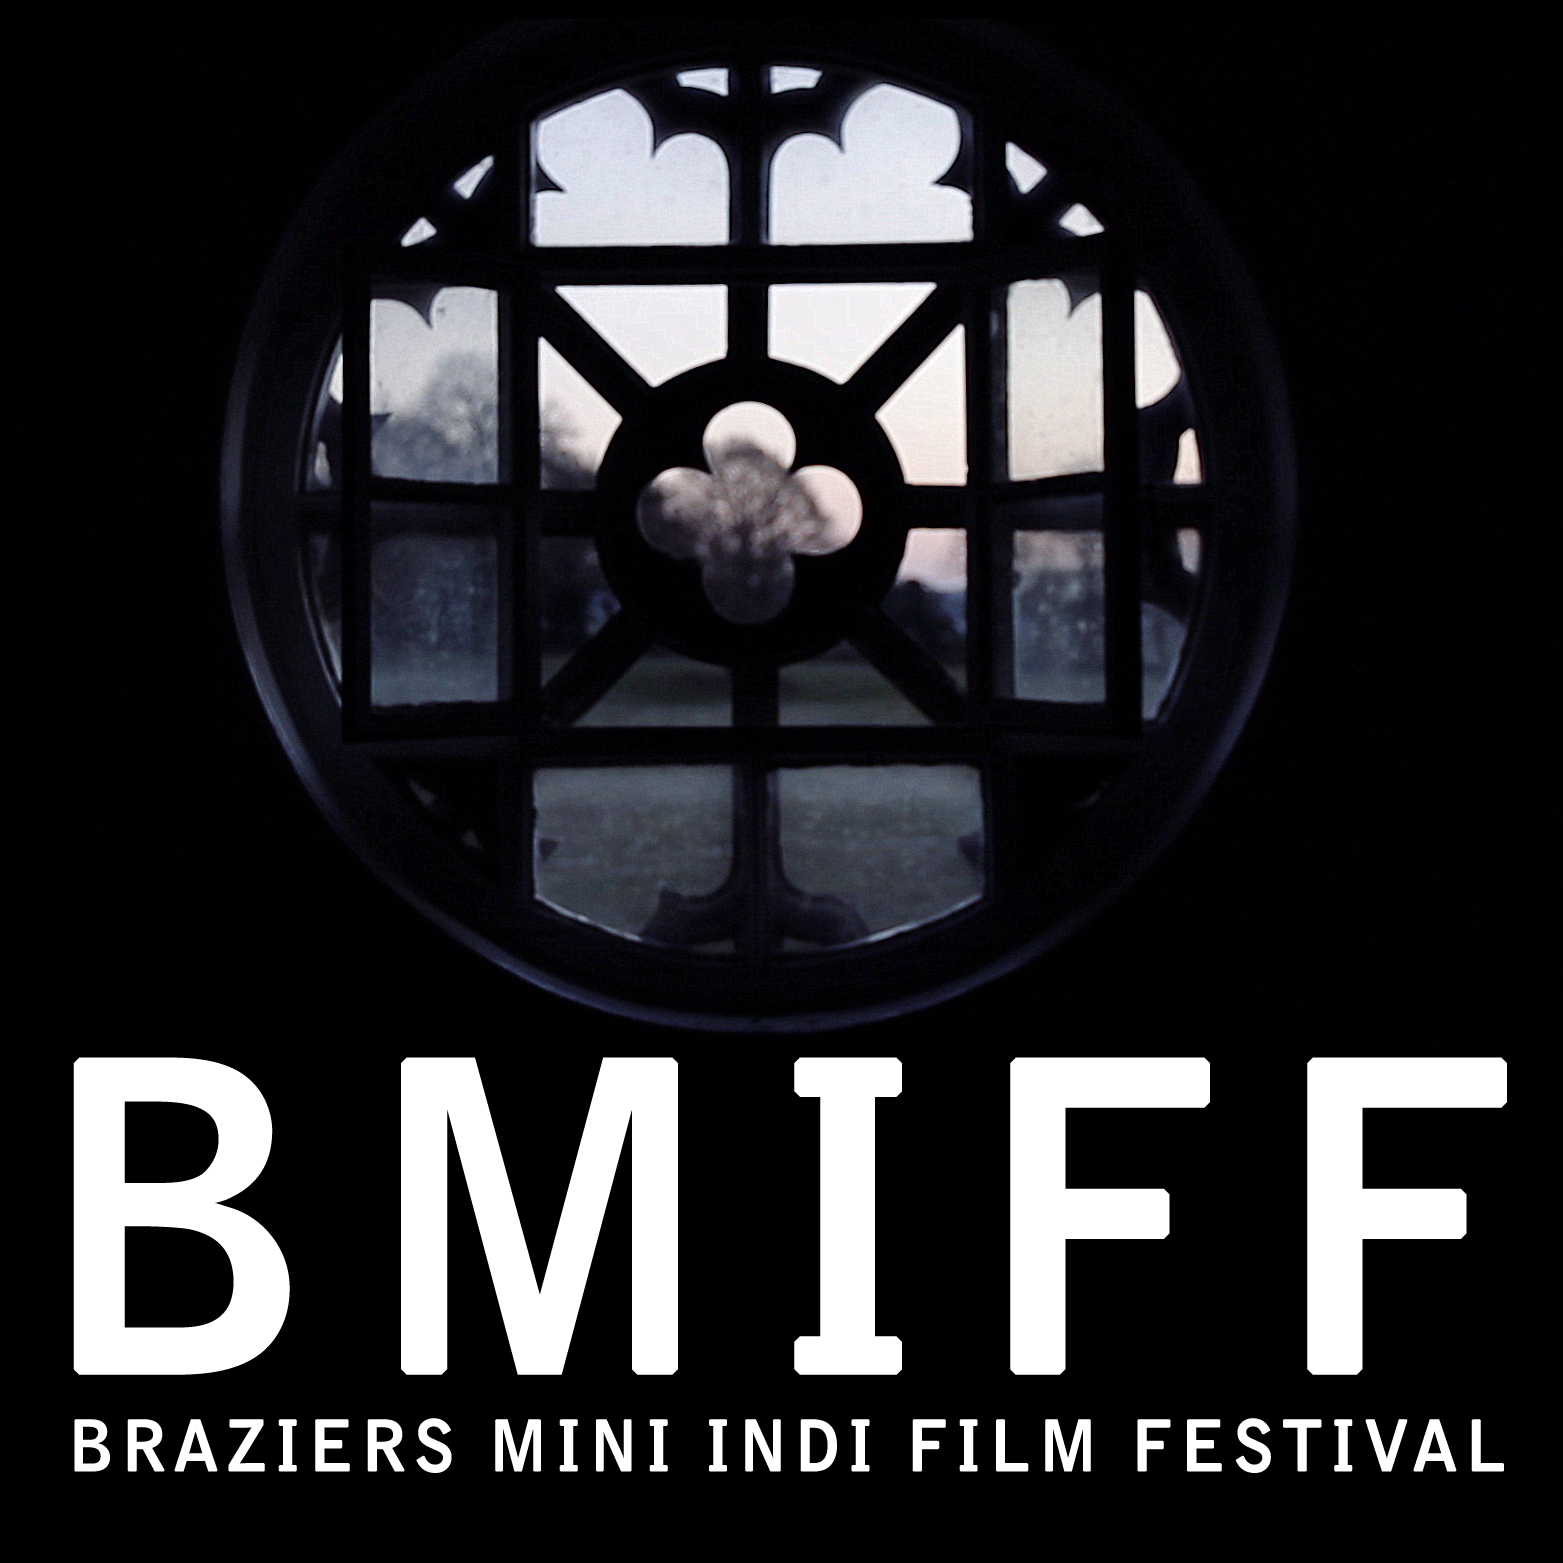 Mini Indi Film Festival